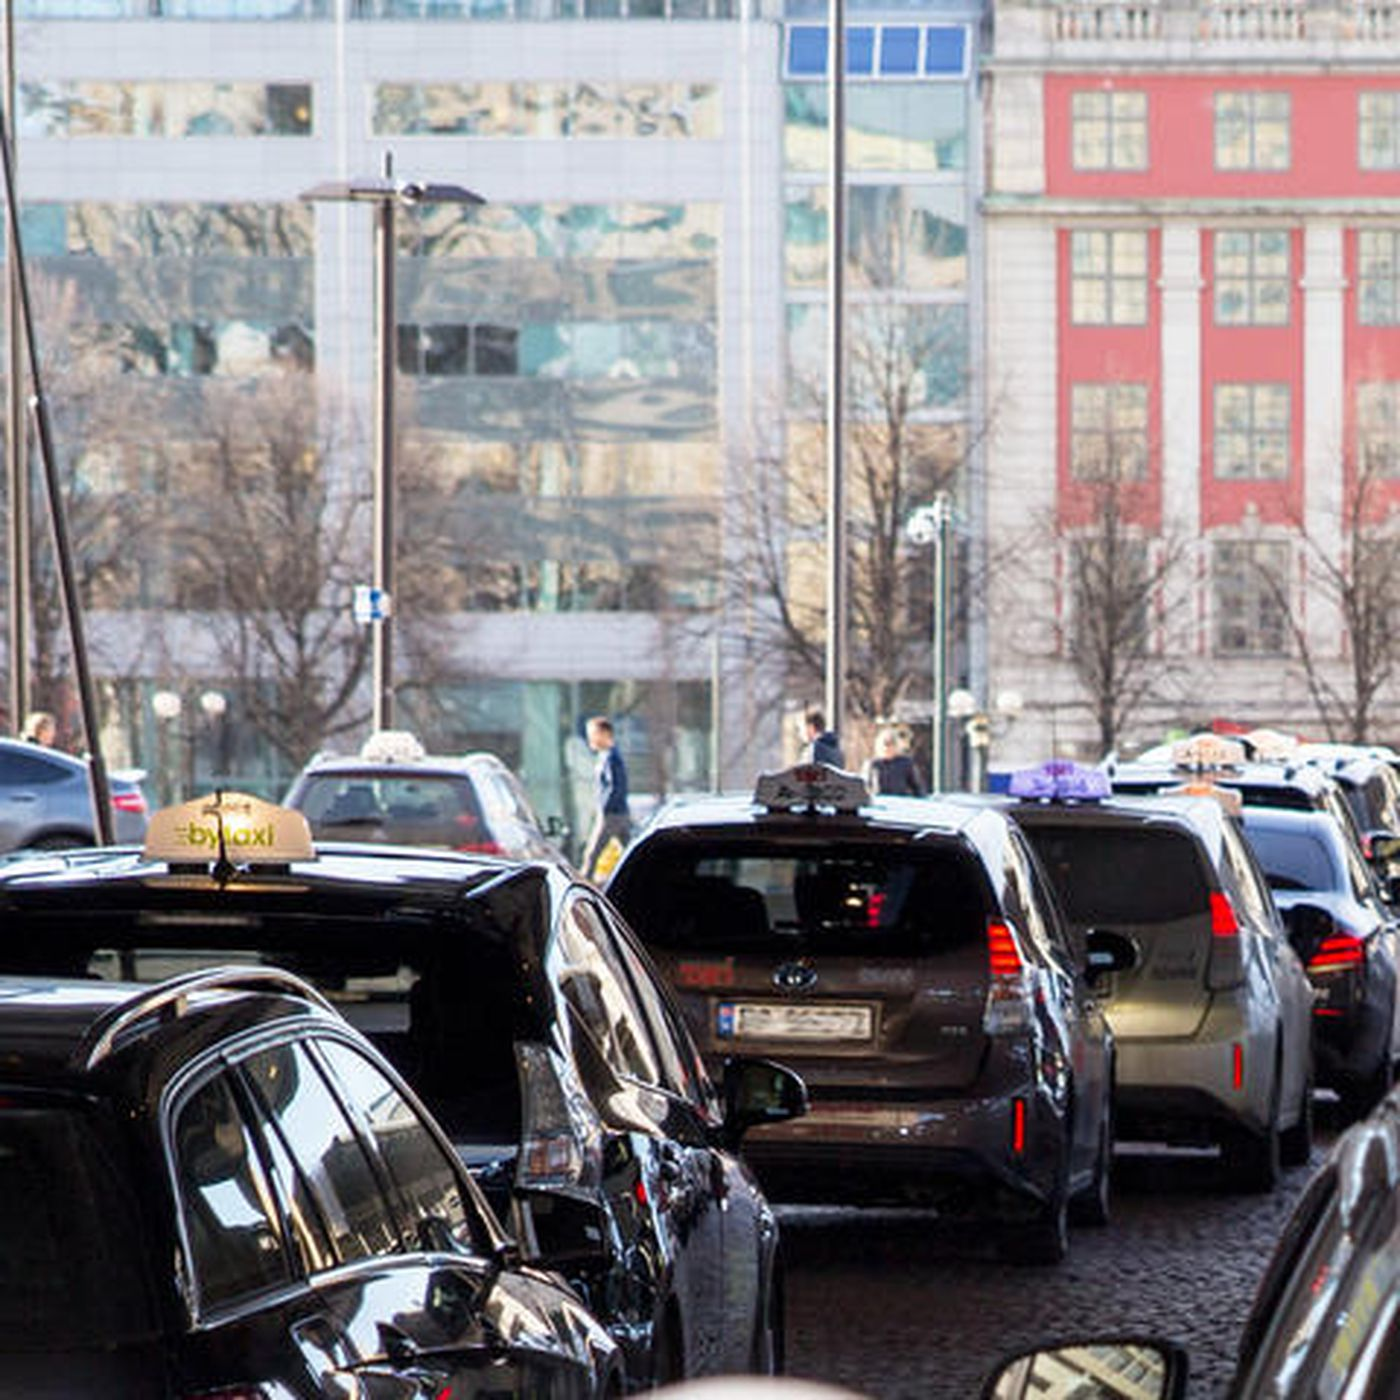 Norway will install the world's first wireless electric car